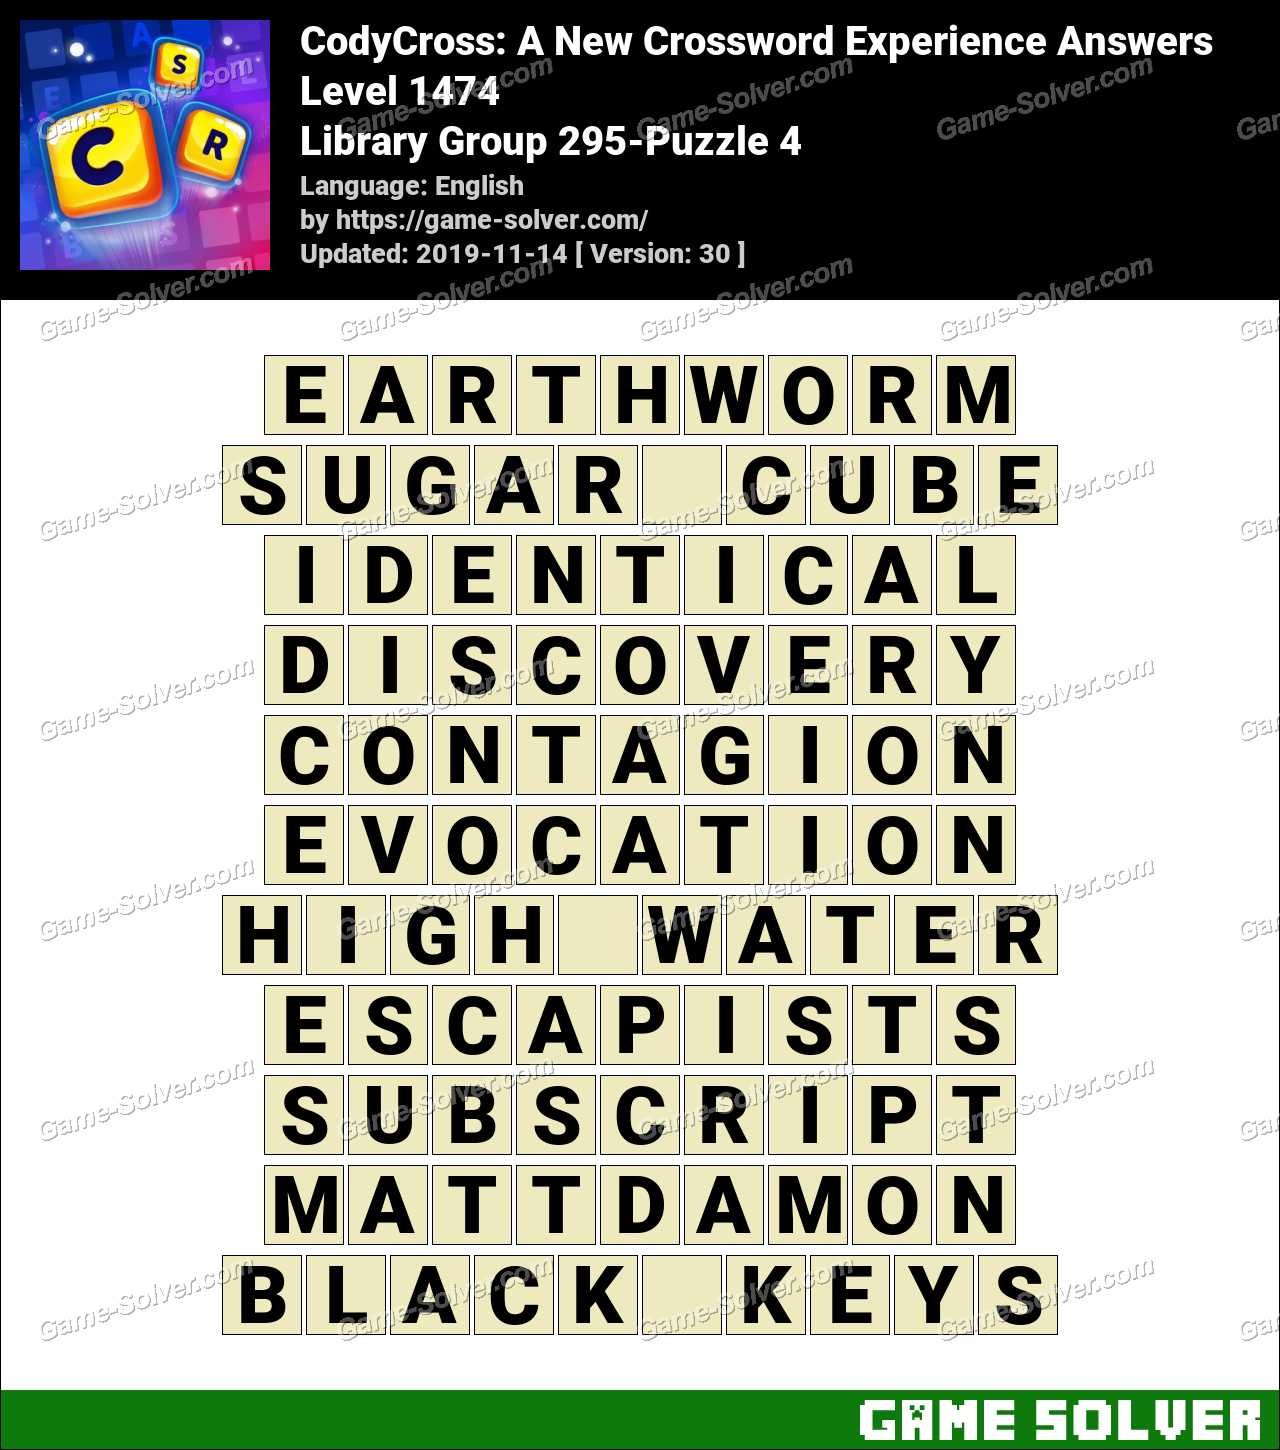 CodyCross Library Group 295-Puzzle 4 Answers